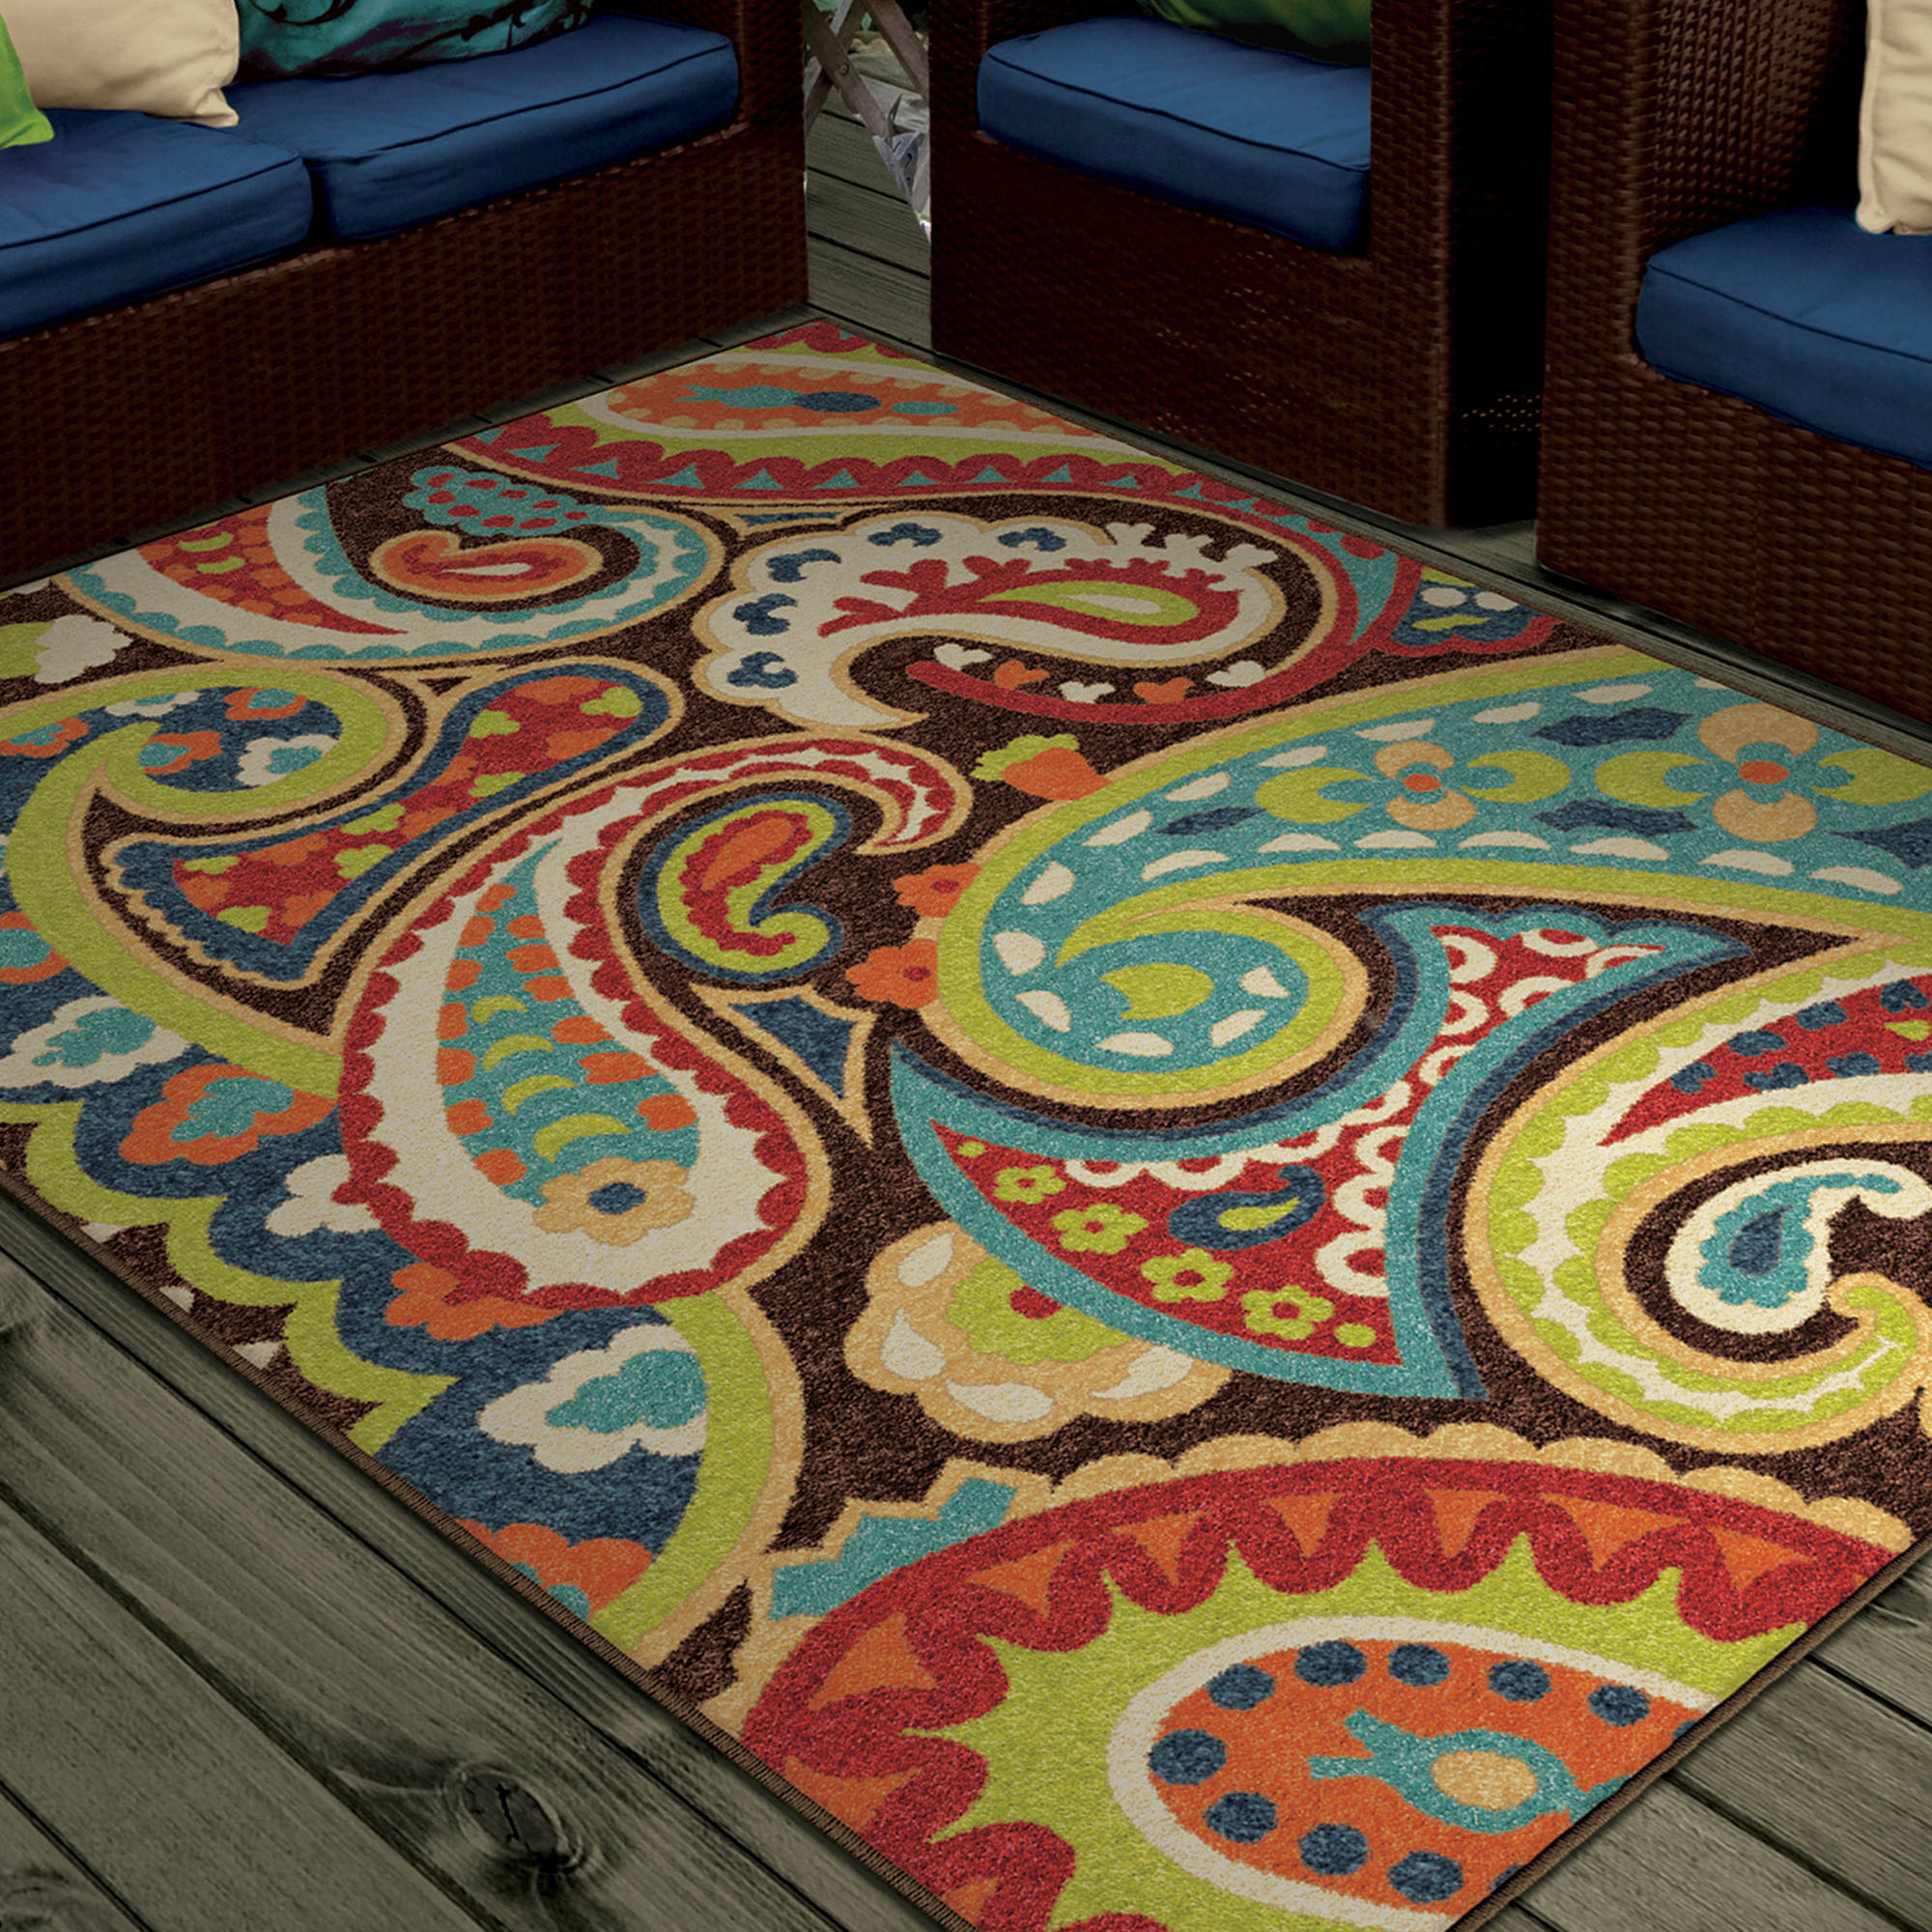 orian rugs paisley monteray multicolored area rug  walmartcom -